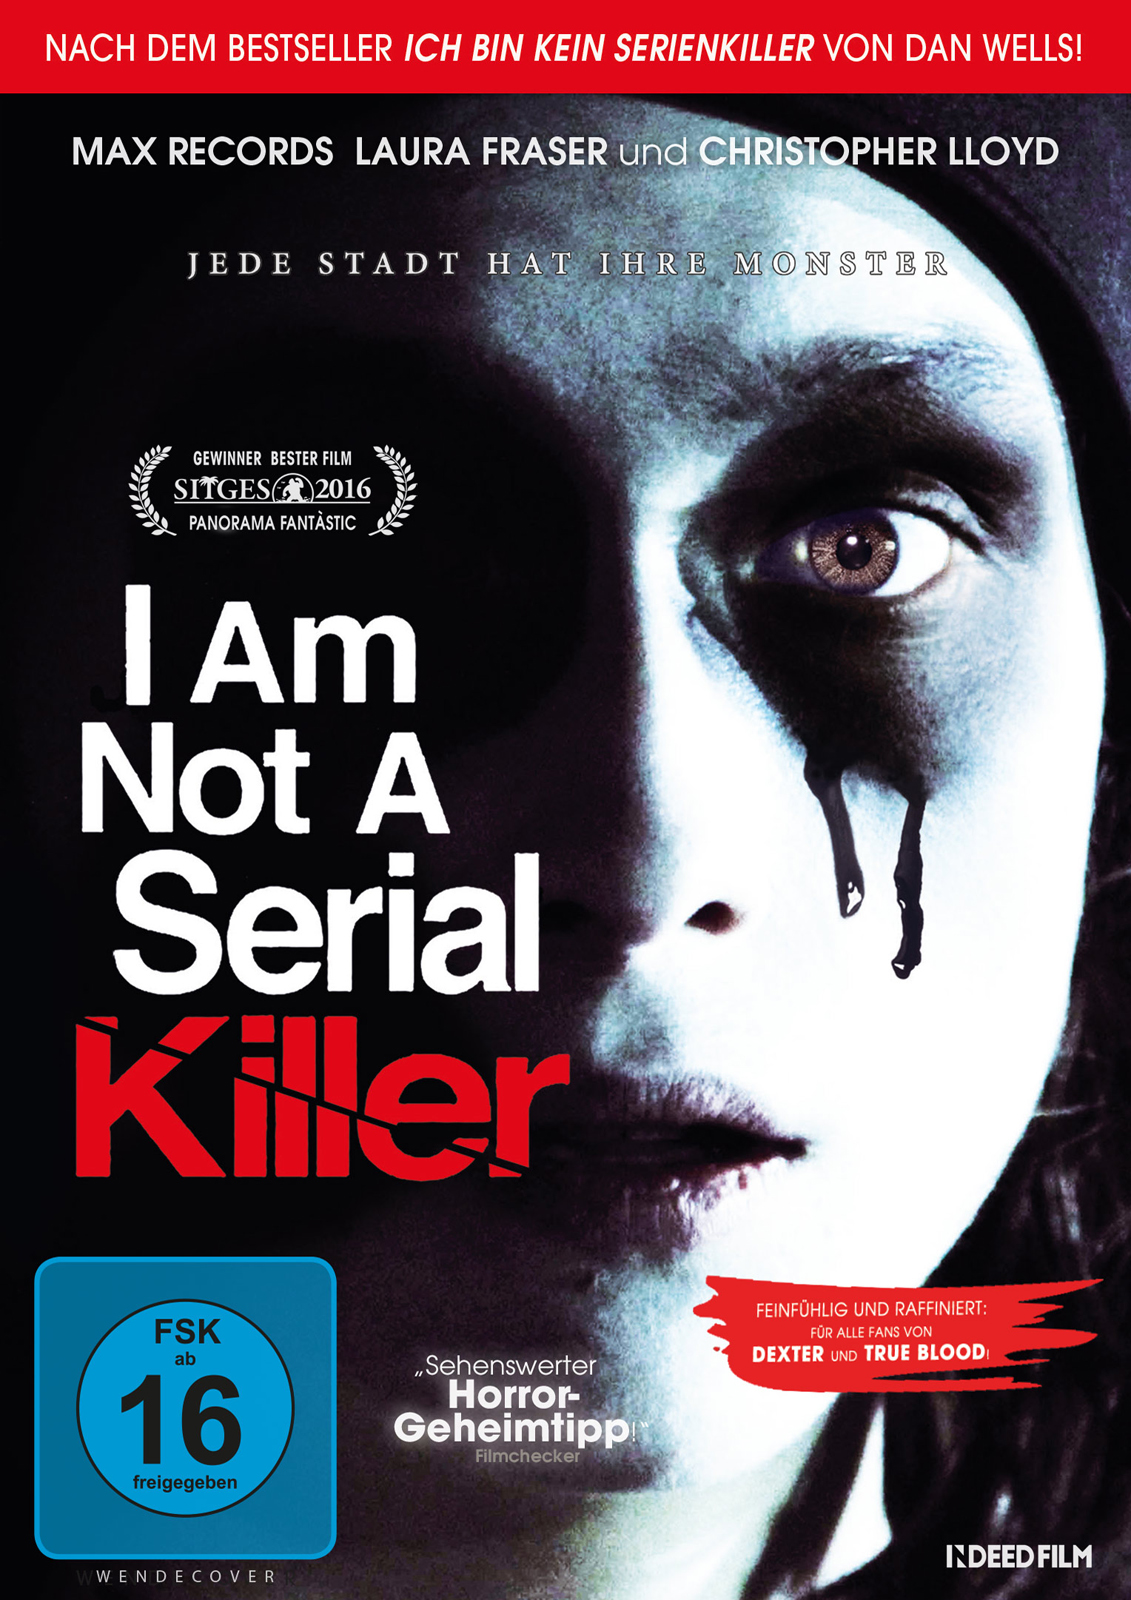 am i a serial killer View hd trailers and videos for i am not a serial killer on rotten tomatoes, then check our tomatometer to find out what the critics say.